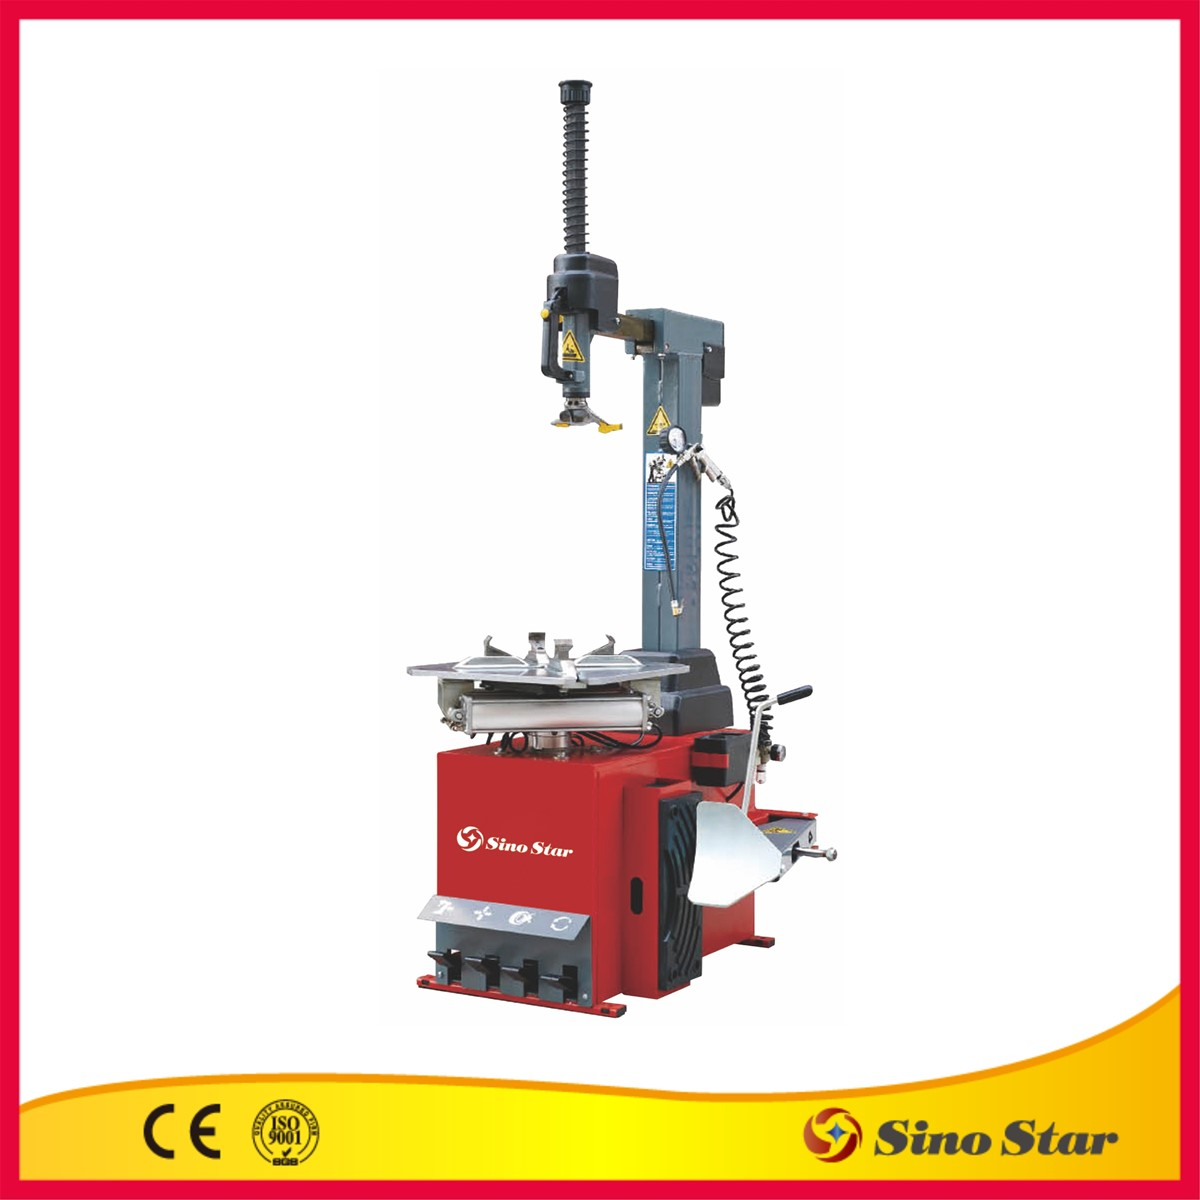 Europe Tire Changing Machine(SS-4990)